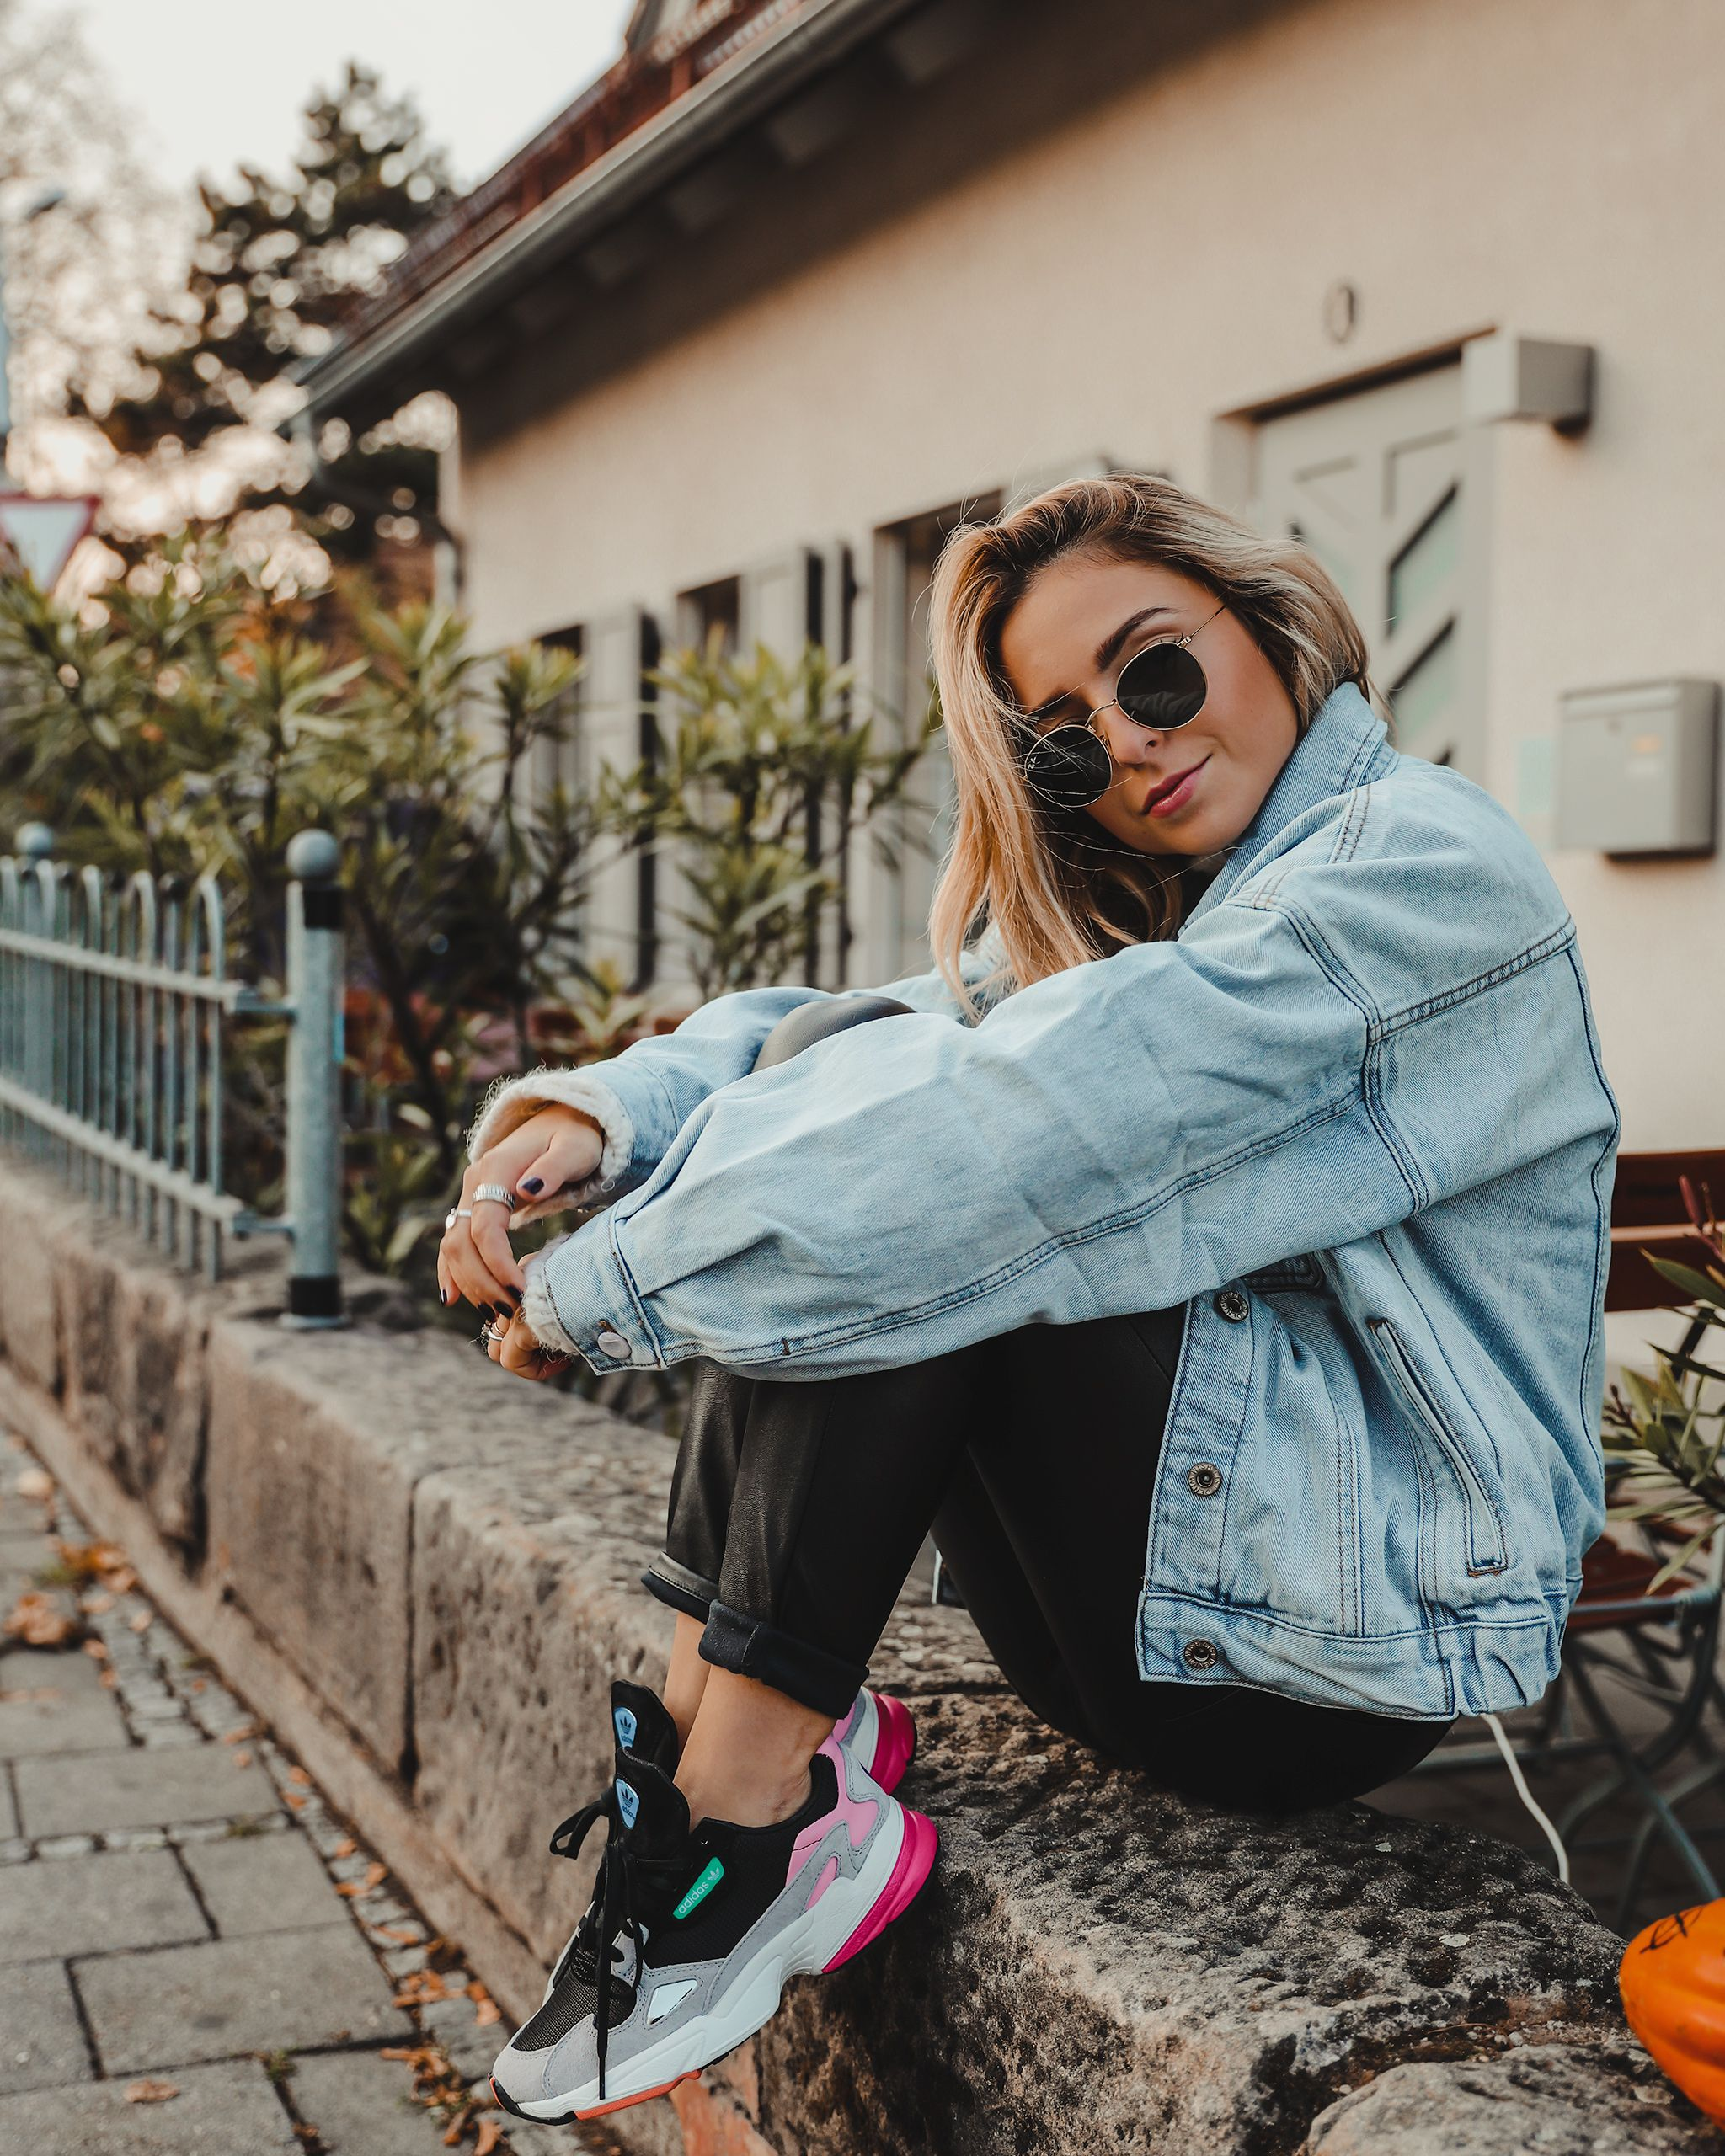 Adidas Falcon Sneakers Outfit, Oversized Look, Denim Jacket ...